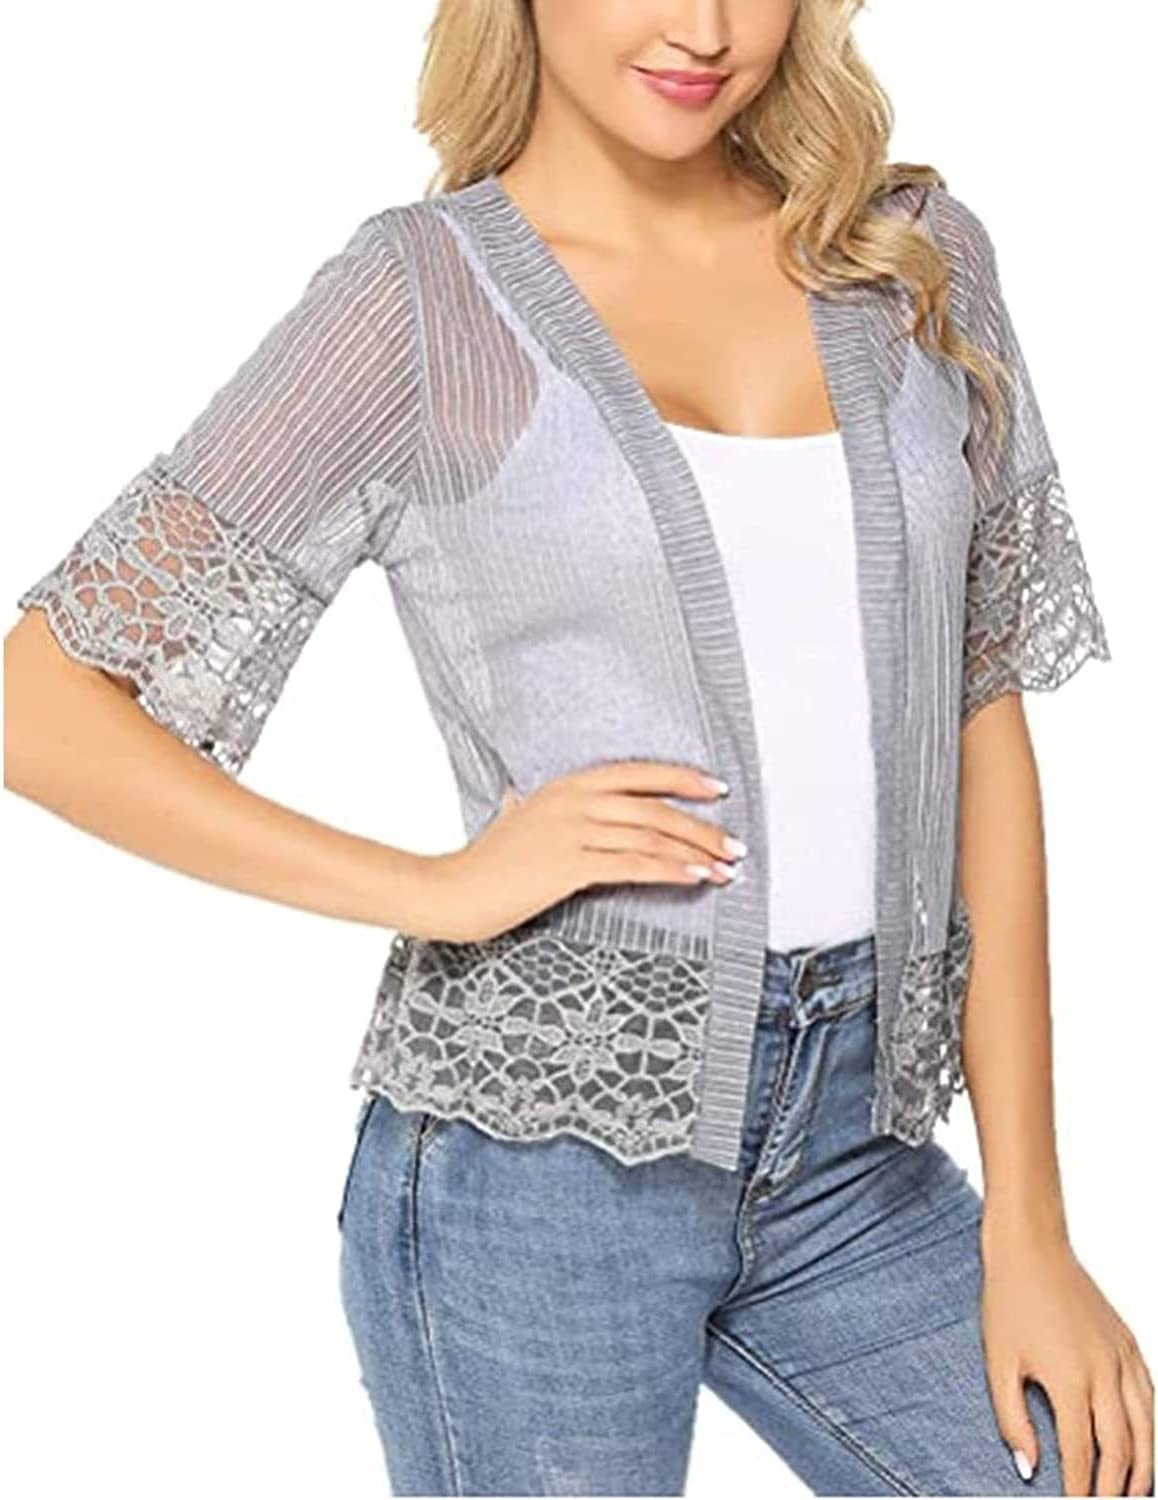 TSQFE Women's Lace Crochet Cardigan Lightweight Half Sleeve Sheer Dressy Shrug Summer Cover Up Jacket (Color : Grey, Size : Small)